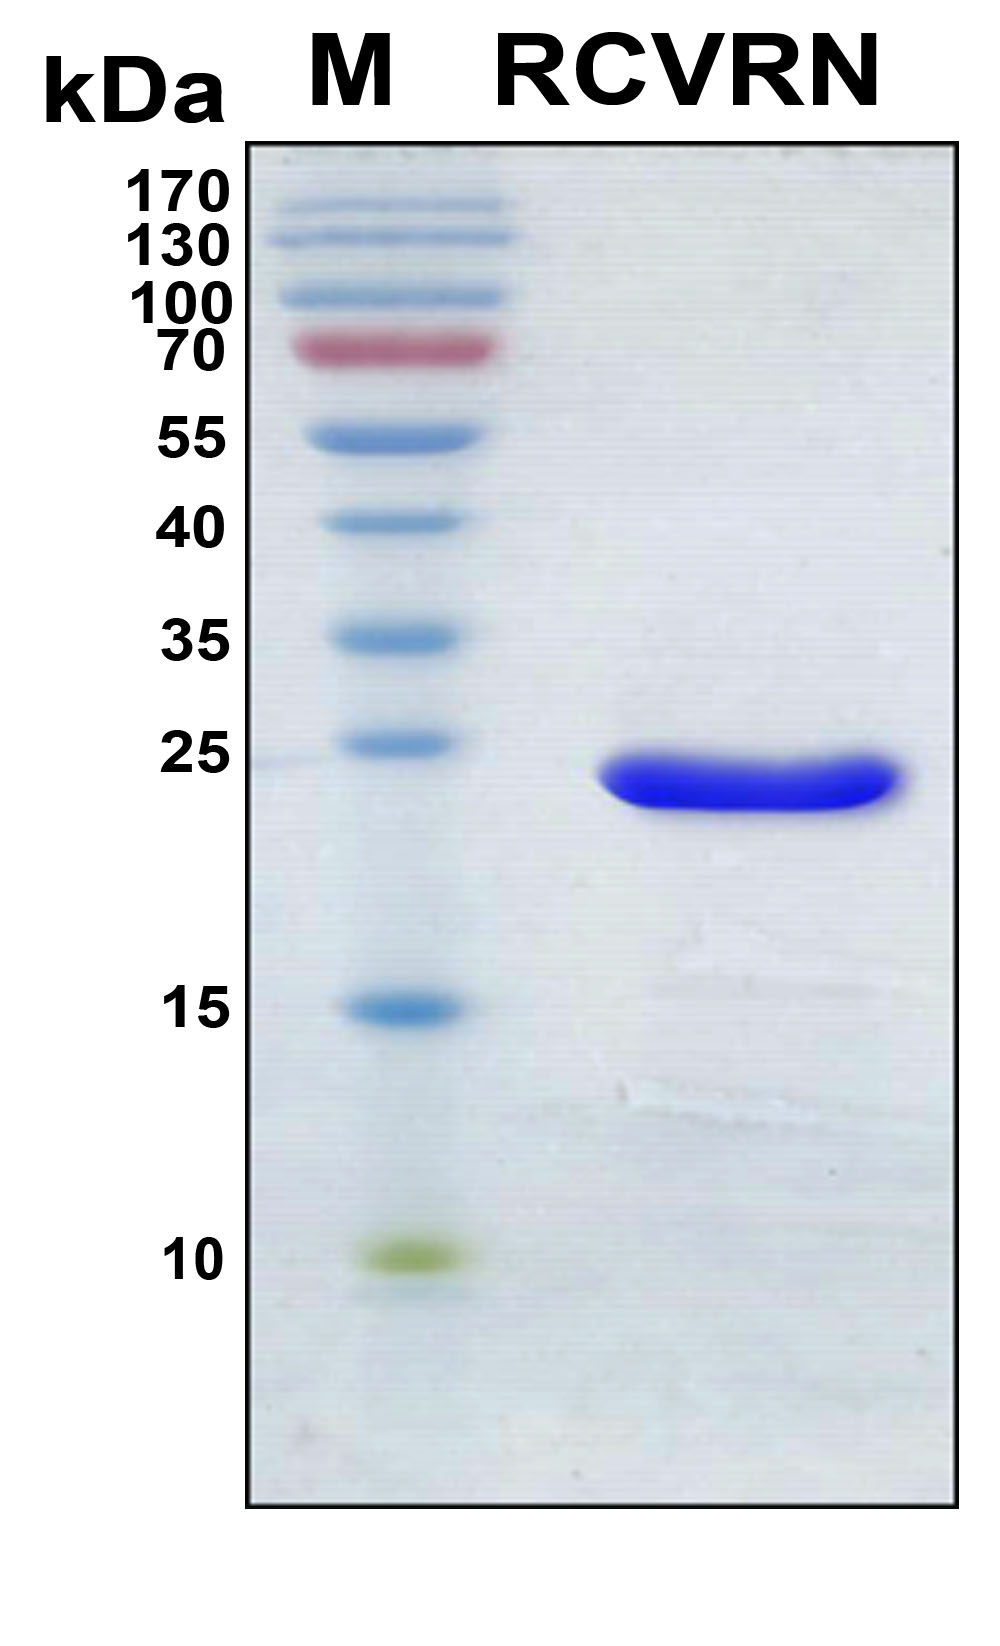 SDS-PAGE under reducing conditions and visualized by Coomassie blue staining